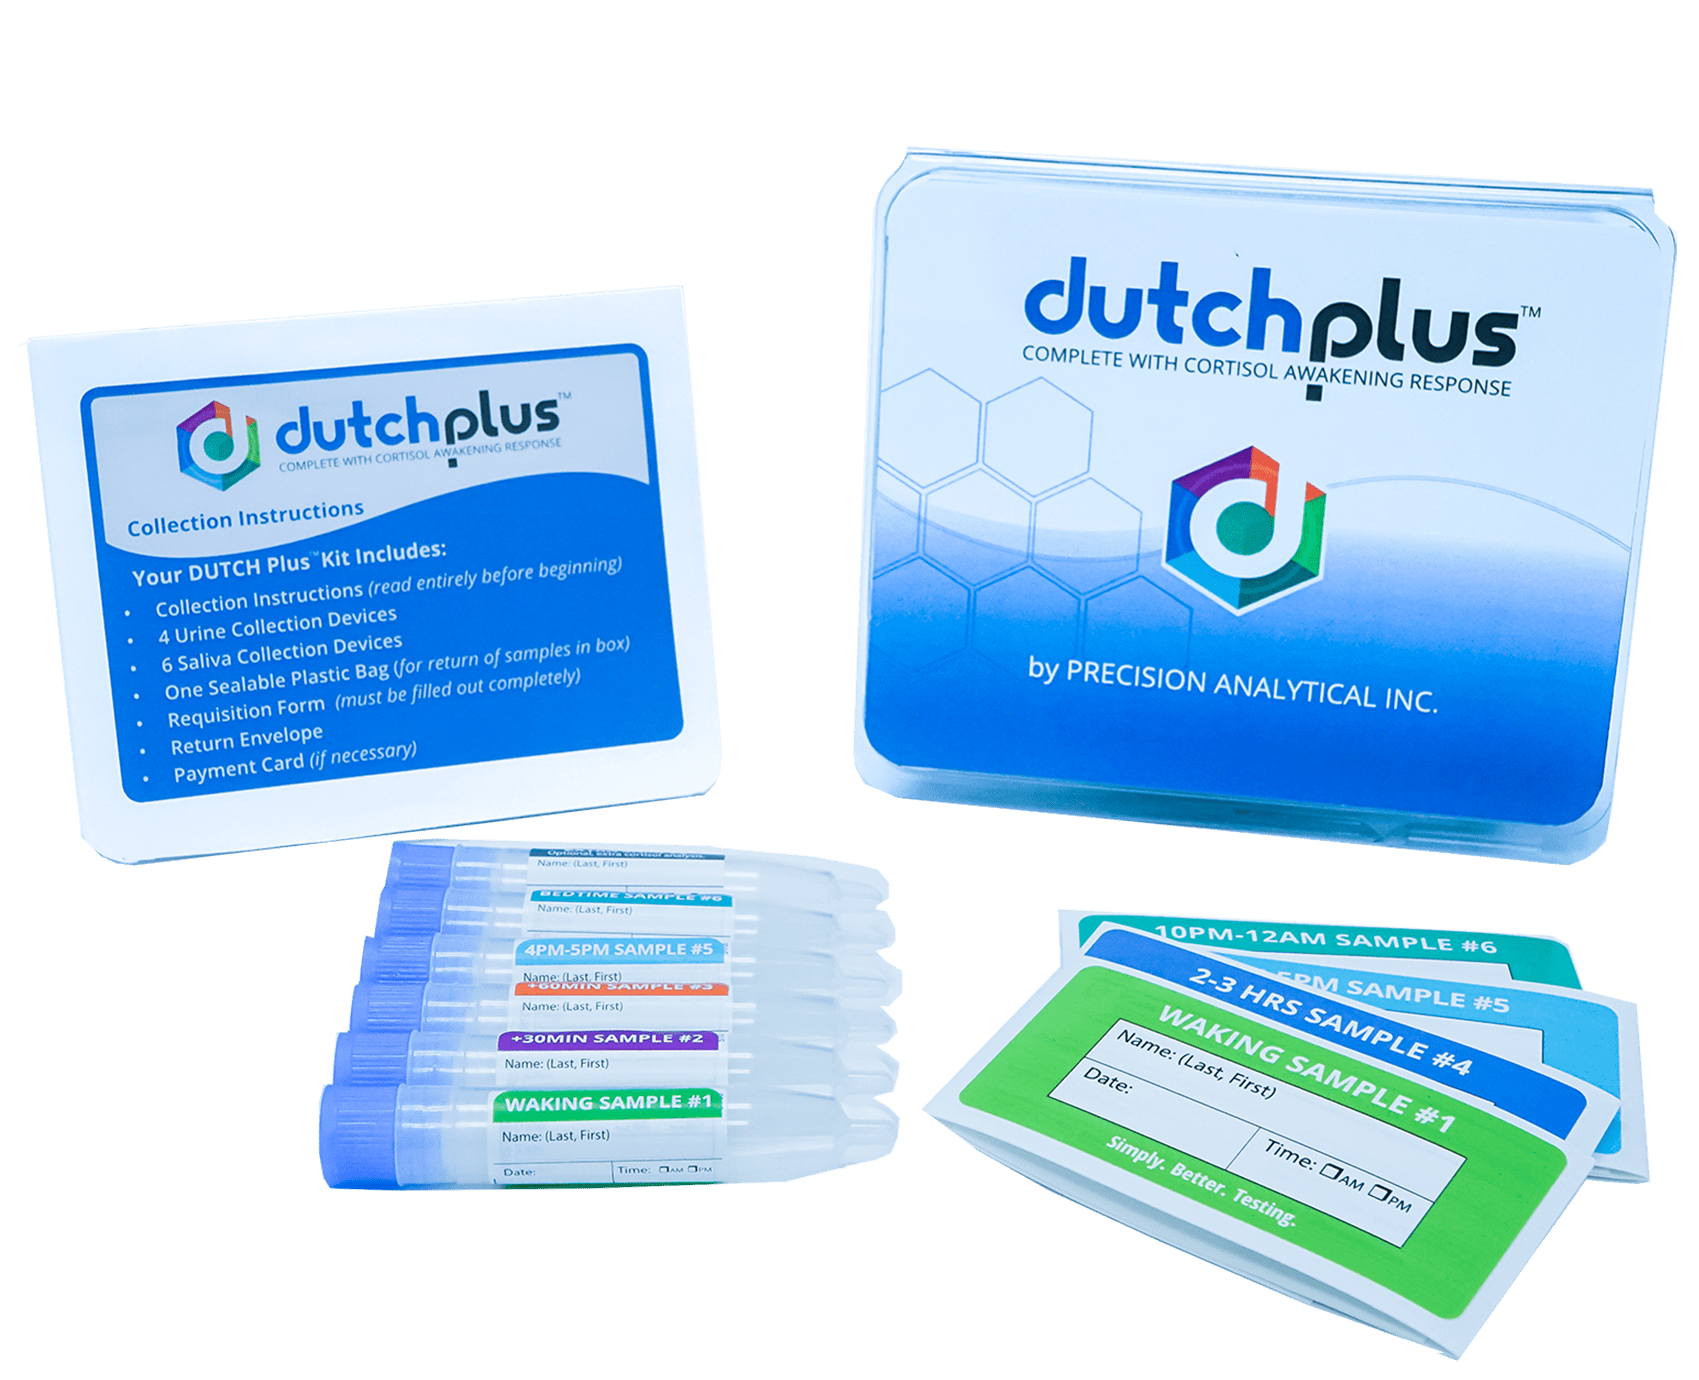 Dutch Plus photo